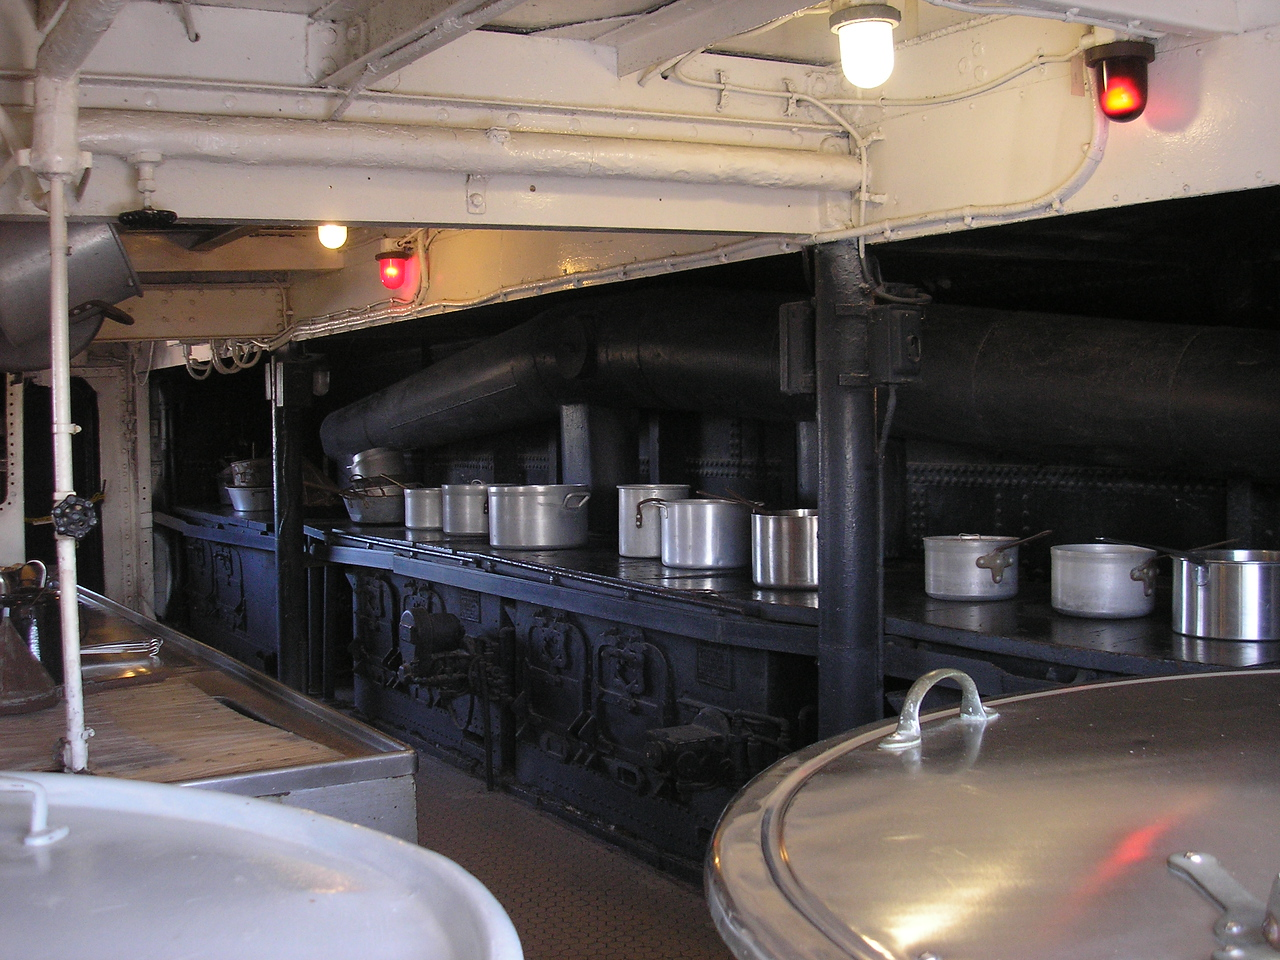 Galley on the main deck